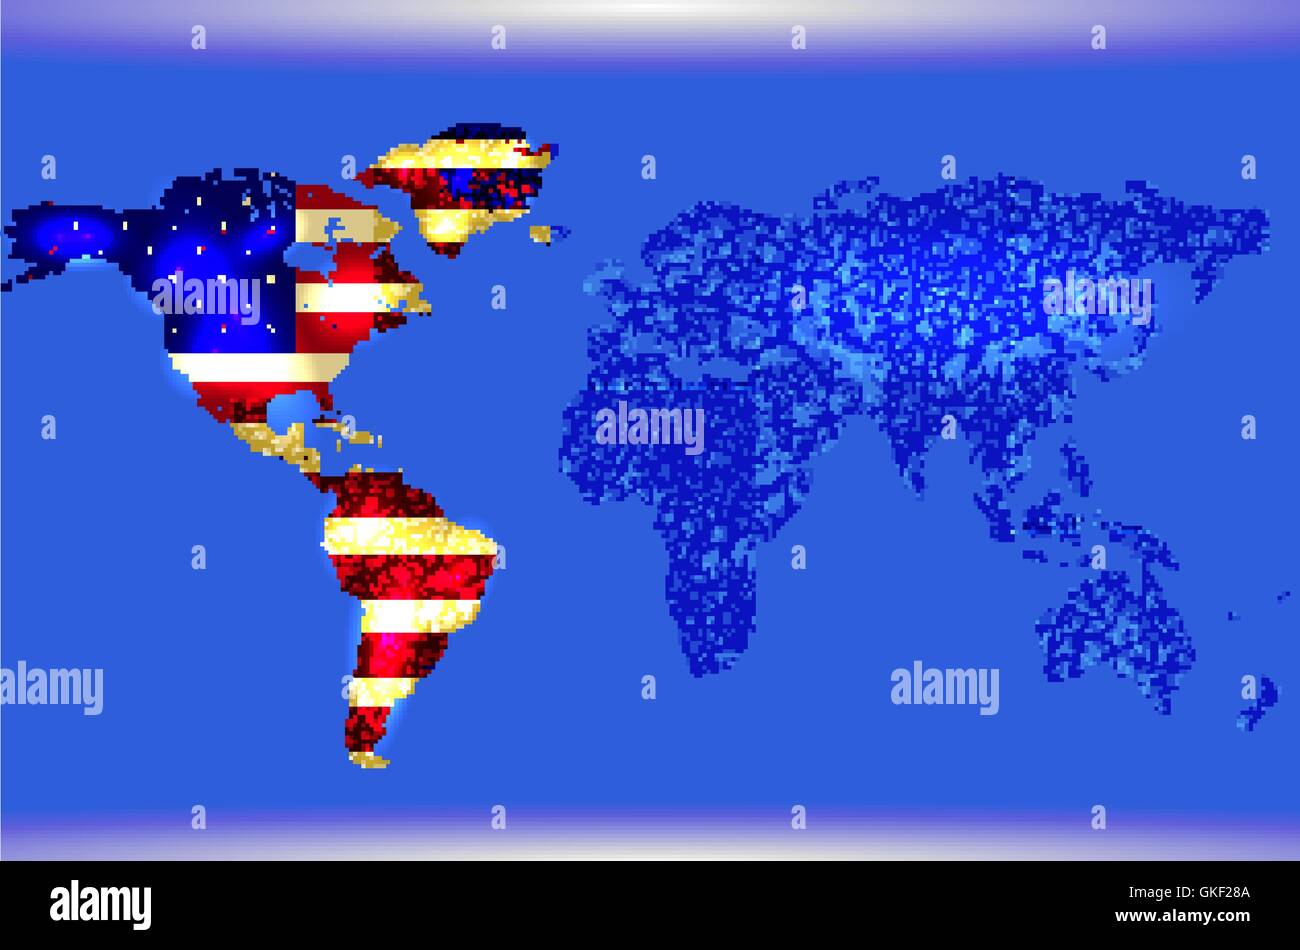 Blue illustrated world map abstract texture lines american flag blue illustrated world map abstract texture lines american flag gumiabroncs Images